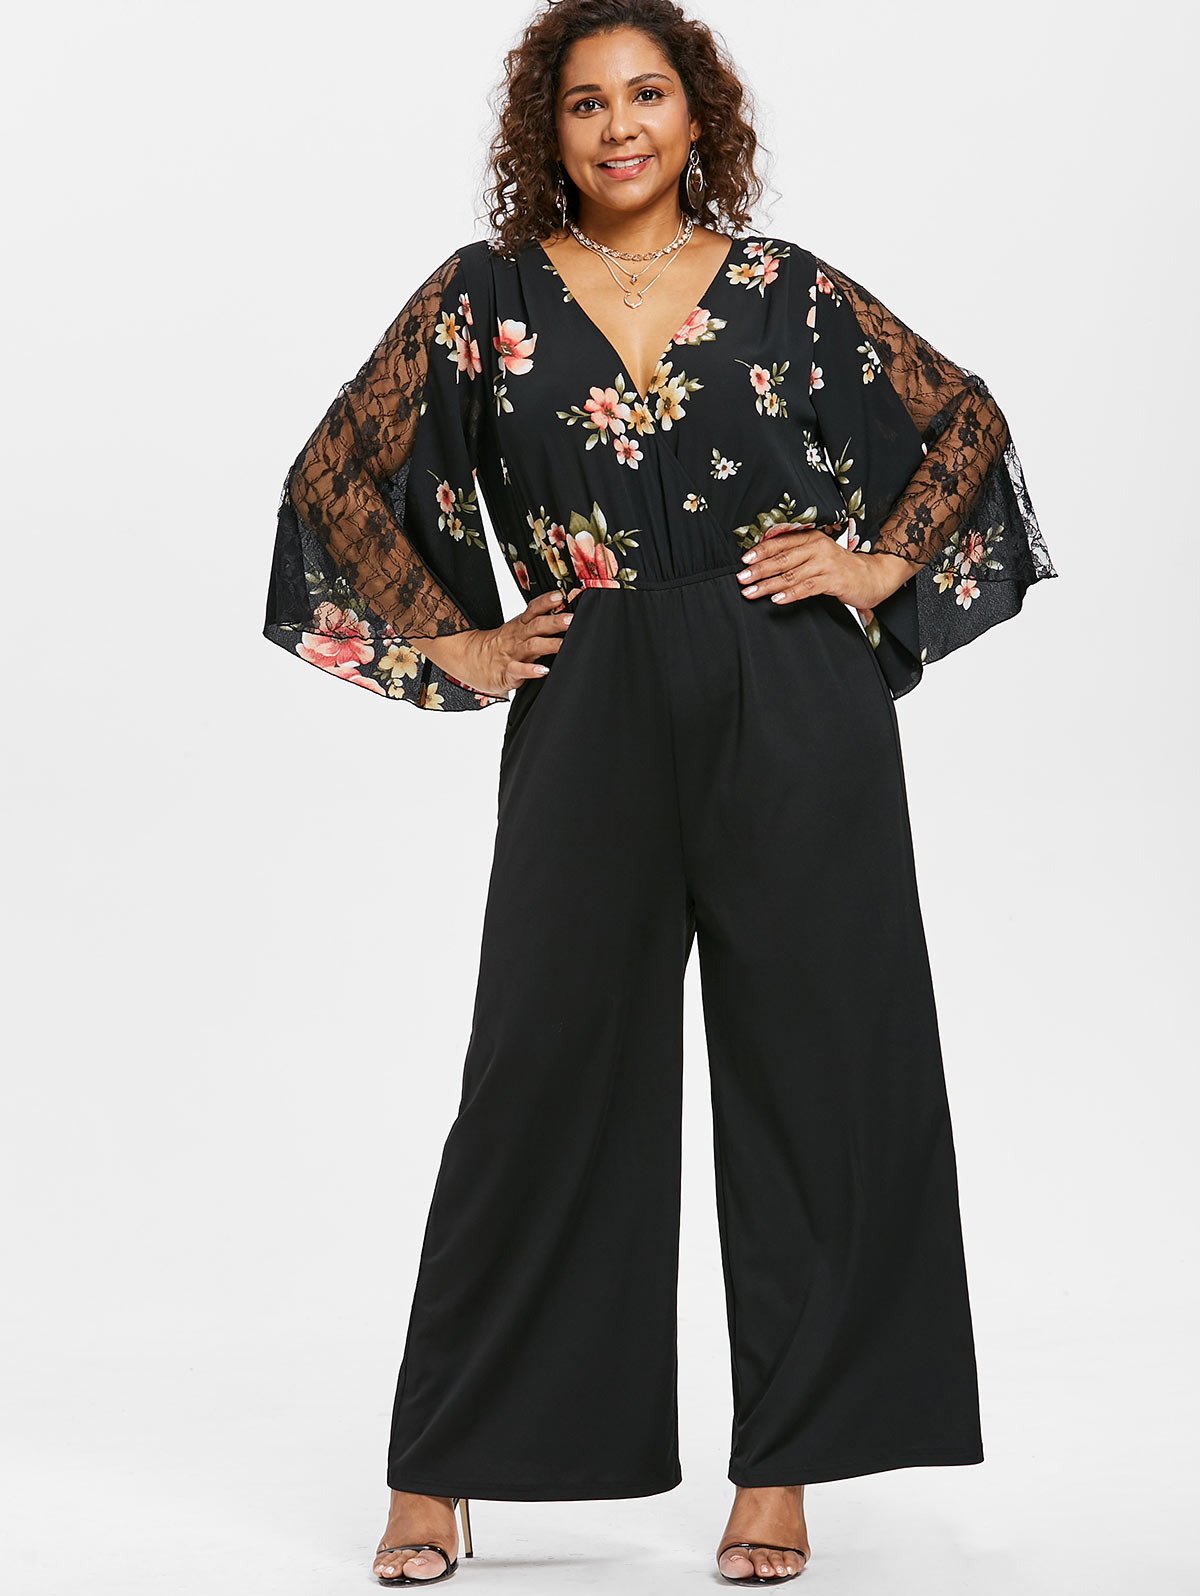 f0107e2f338 Wipalo Autumn Floral Print Jumpsuit Women Casual Black Wide Leg Rompers  Plus Size Lace Patchwork Bell Sleeve Jumpsuits Overalls